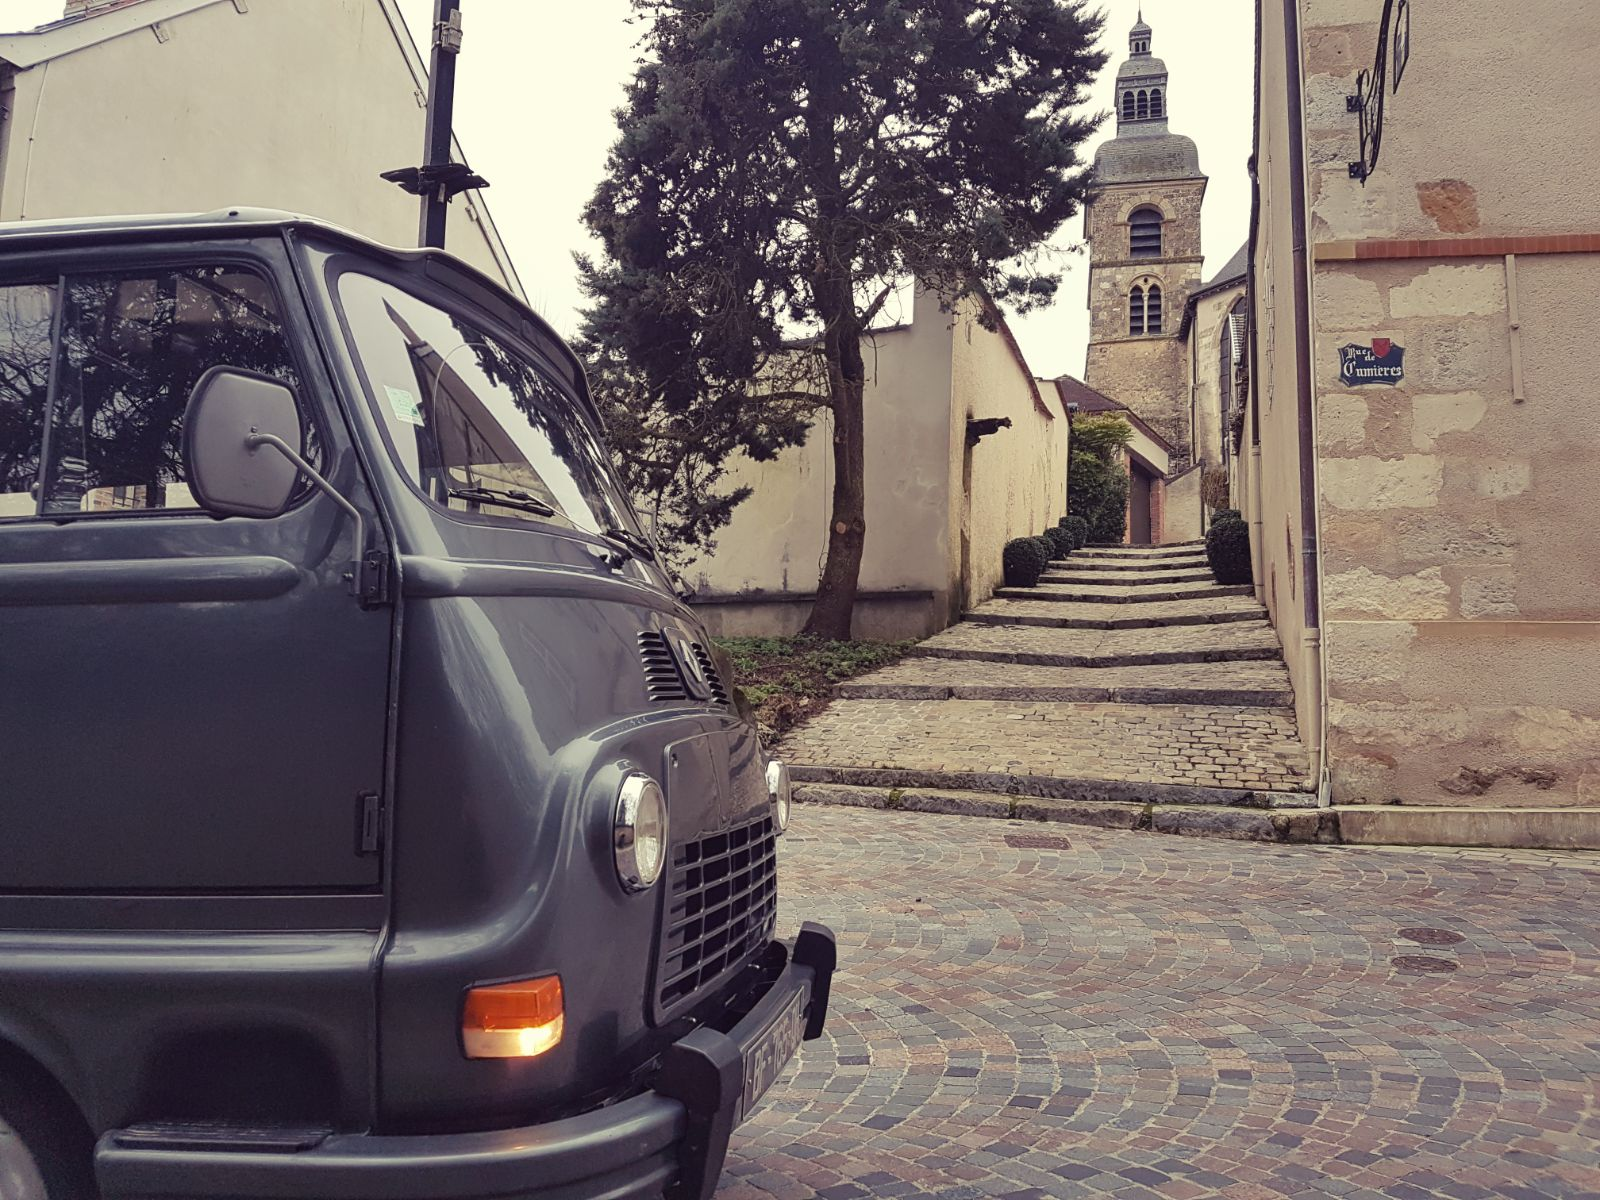 Vintage Champagne tours - Wine tours in a vintage van Reims Epernay Hautvilliers